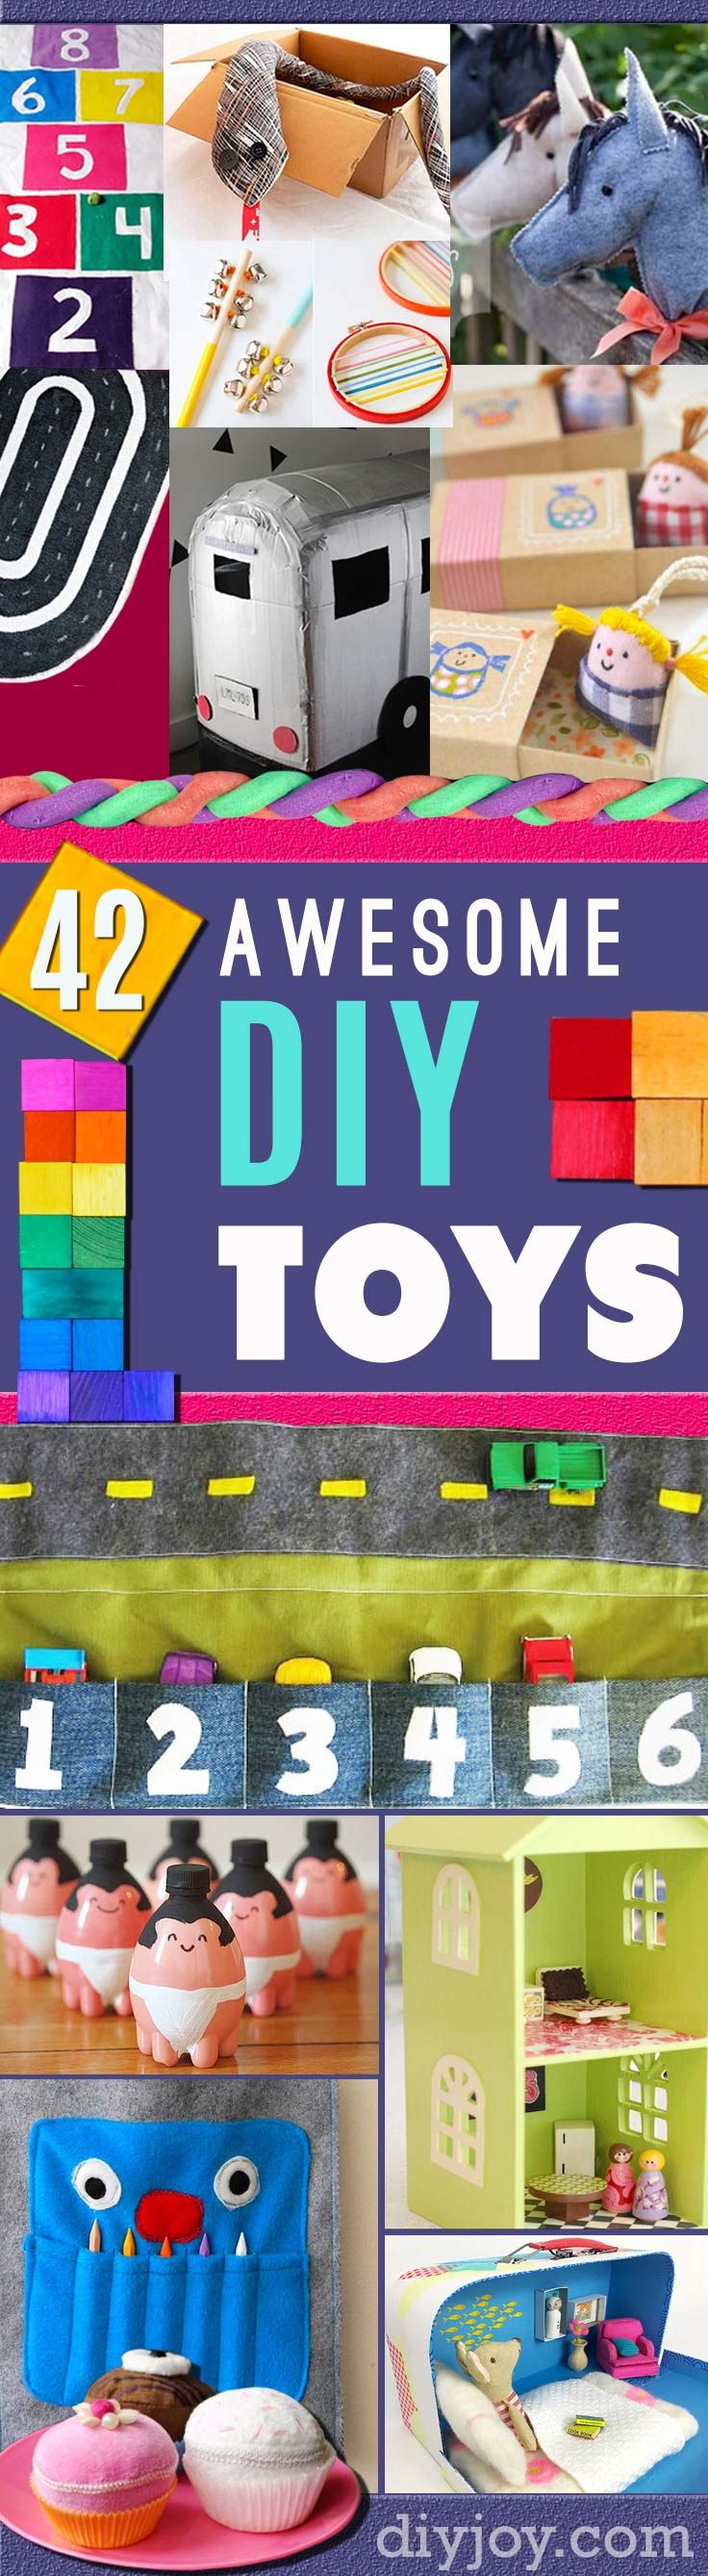 41 fun diy gifts to make for kids perfect homemade christmas do it yourself christmas gifts for kids homemade christmas presents for children and dyi christmas crafts for kids toys dress up clothes dolls and fun solutioingenieria Gallery